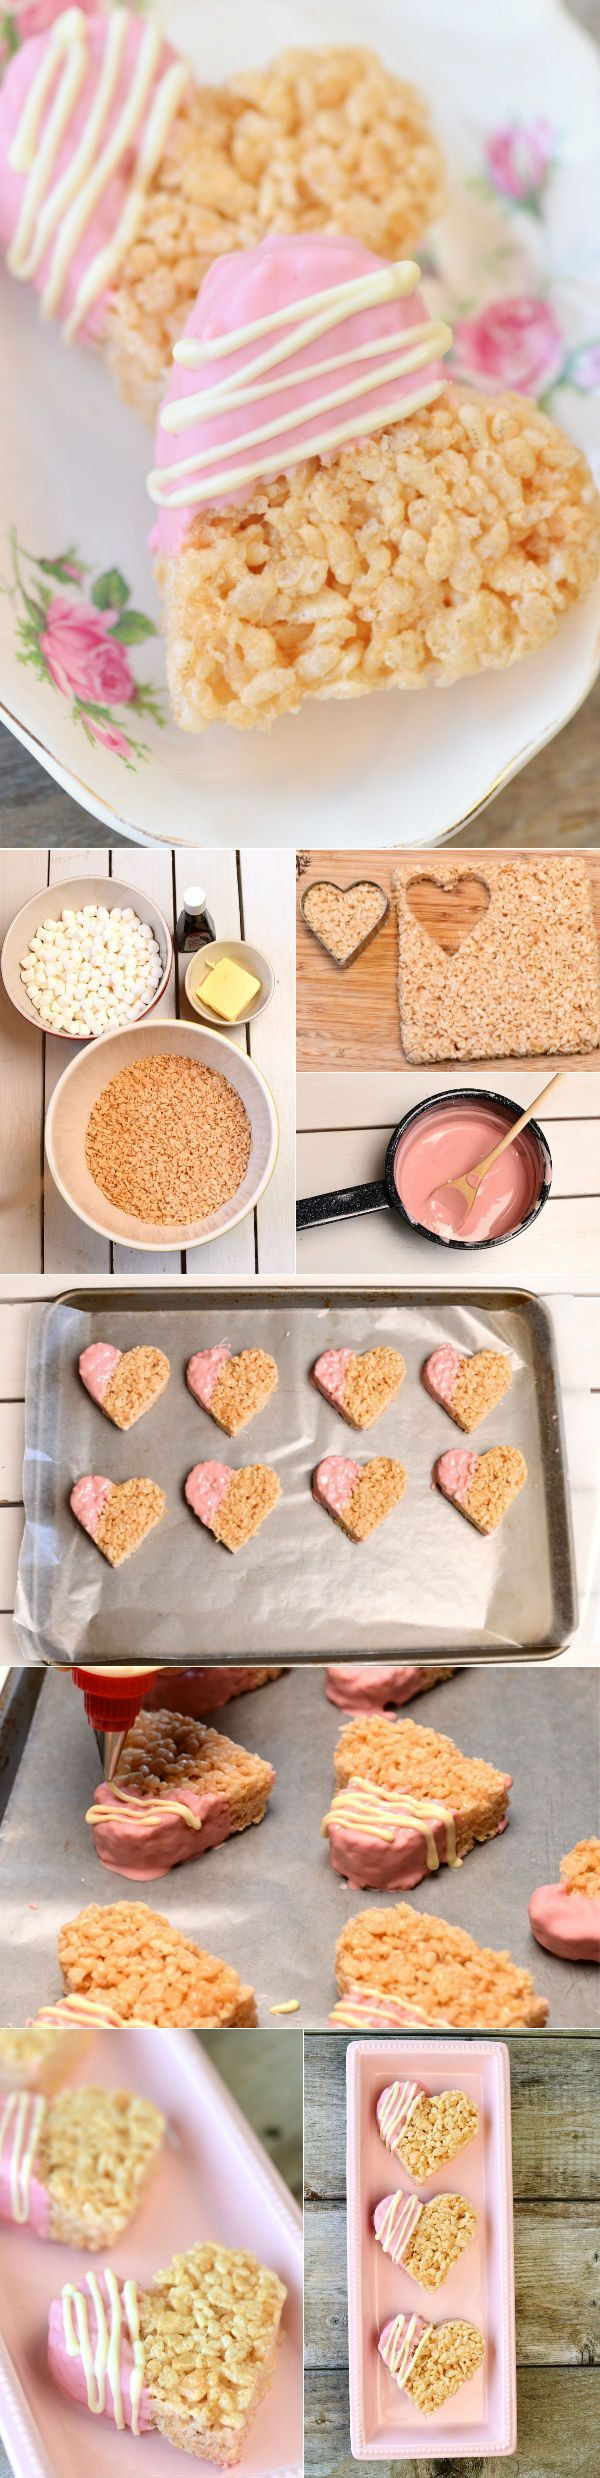 cute edible DIY wedding favors with rise krispie treat